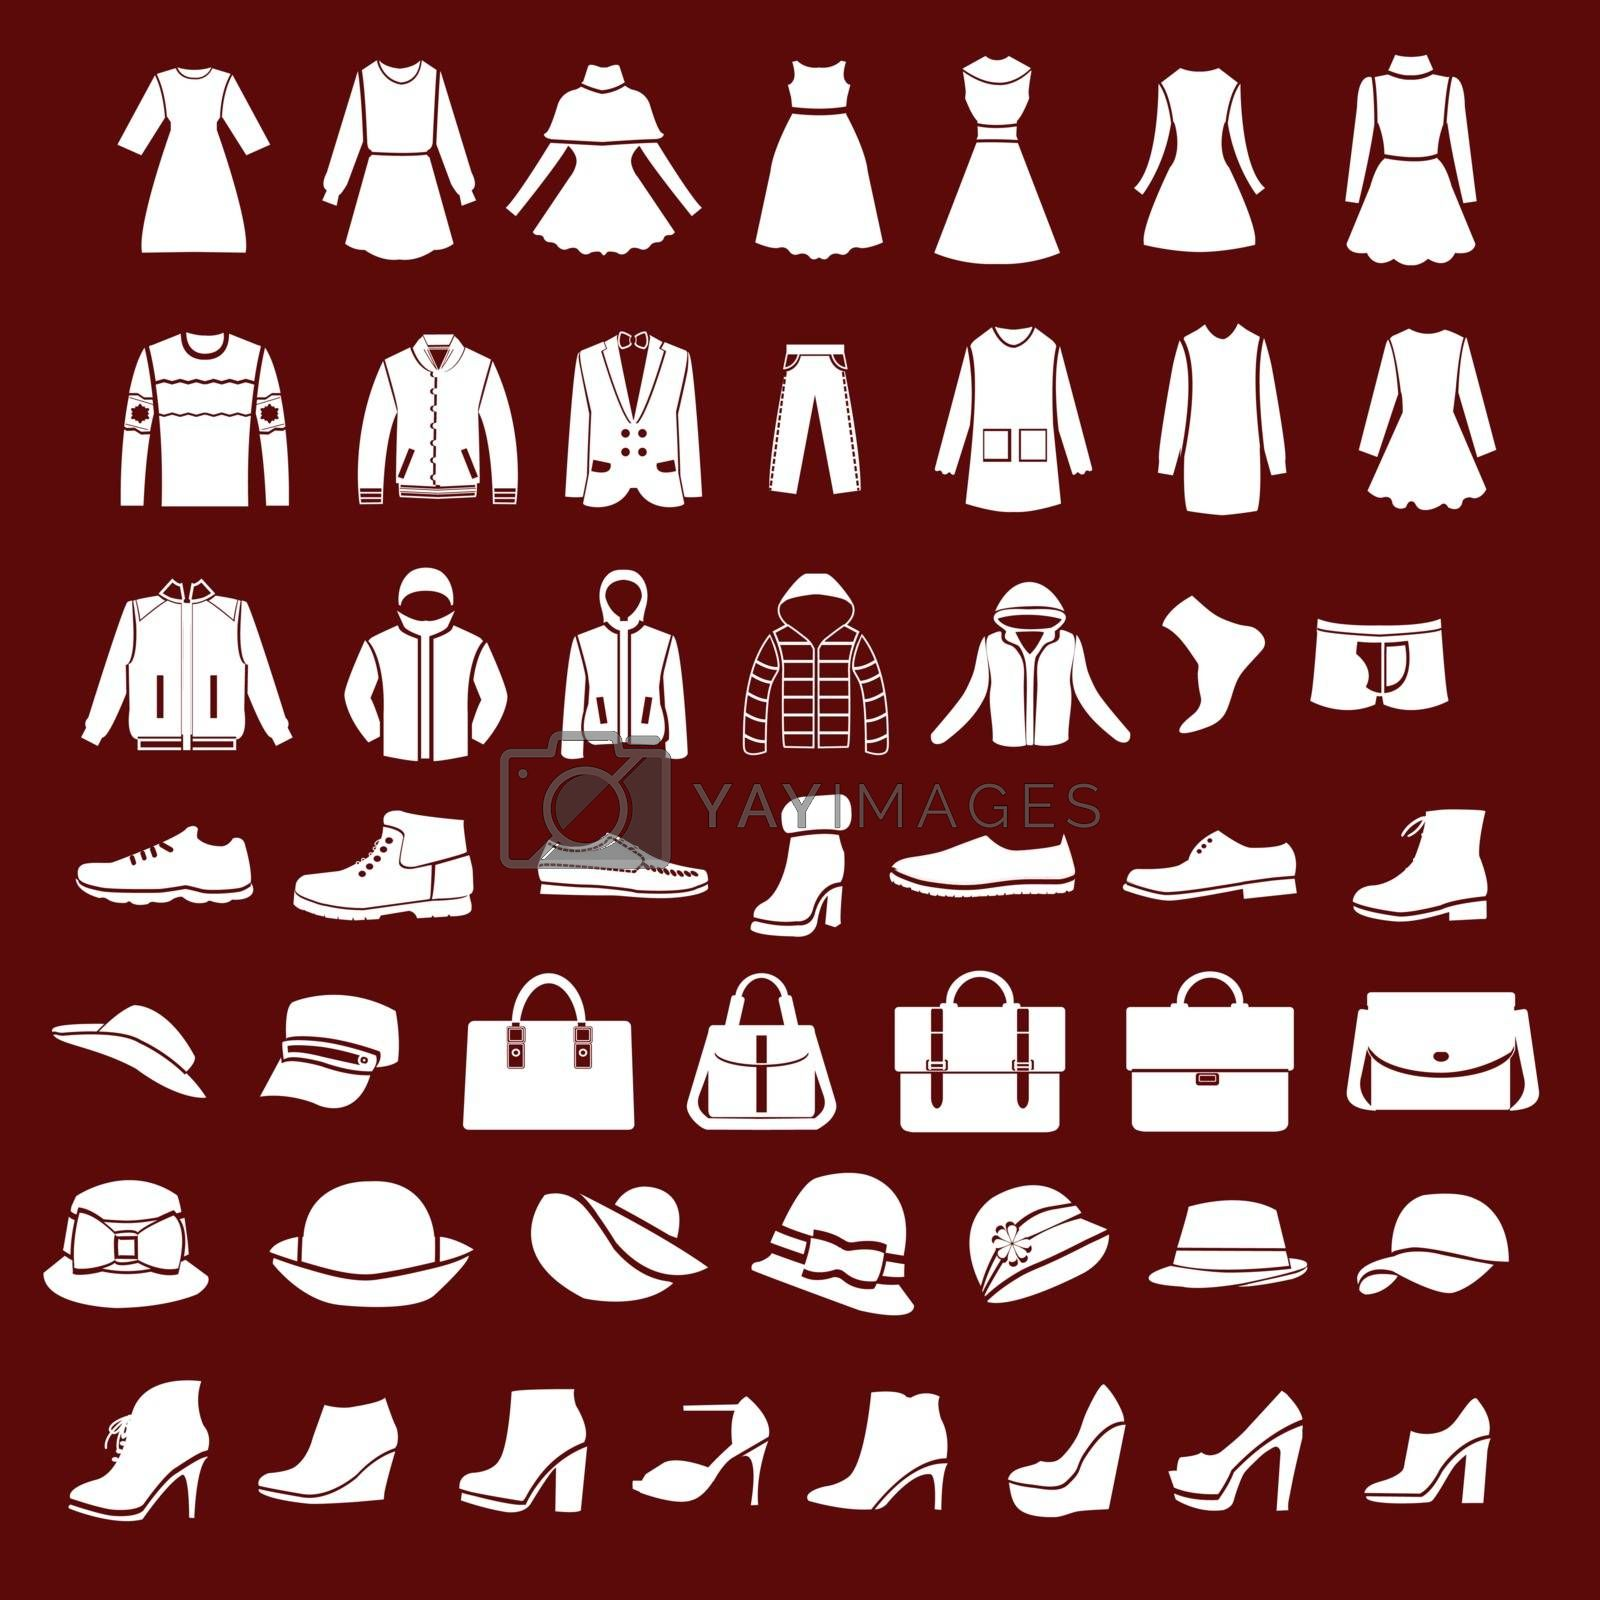 Set icons of women fashion dresses and men clothing , shoes and hats  silhouette